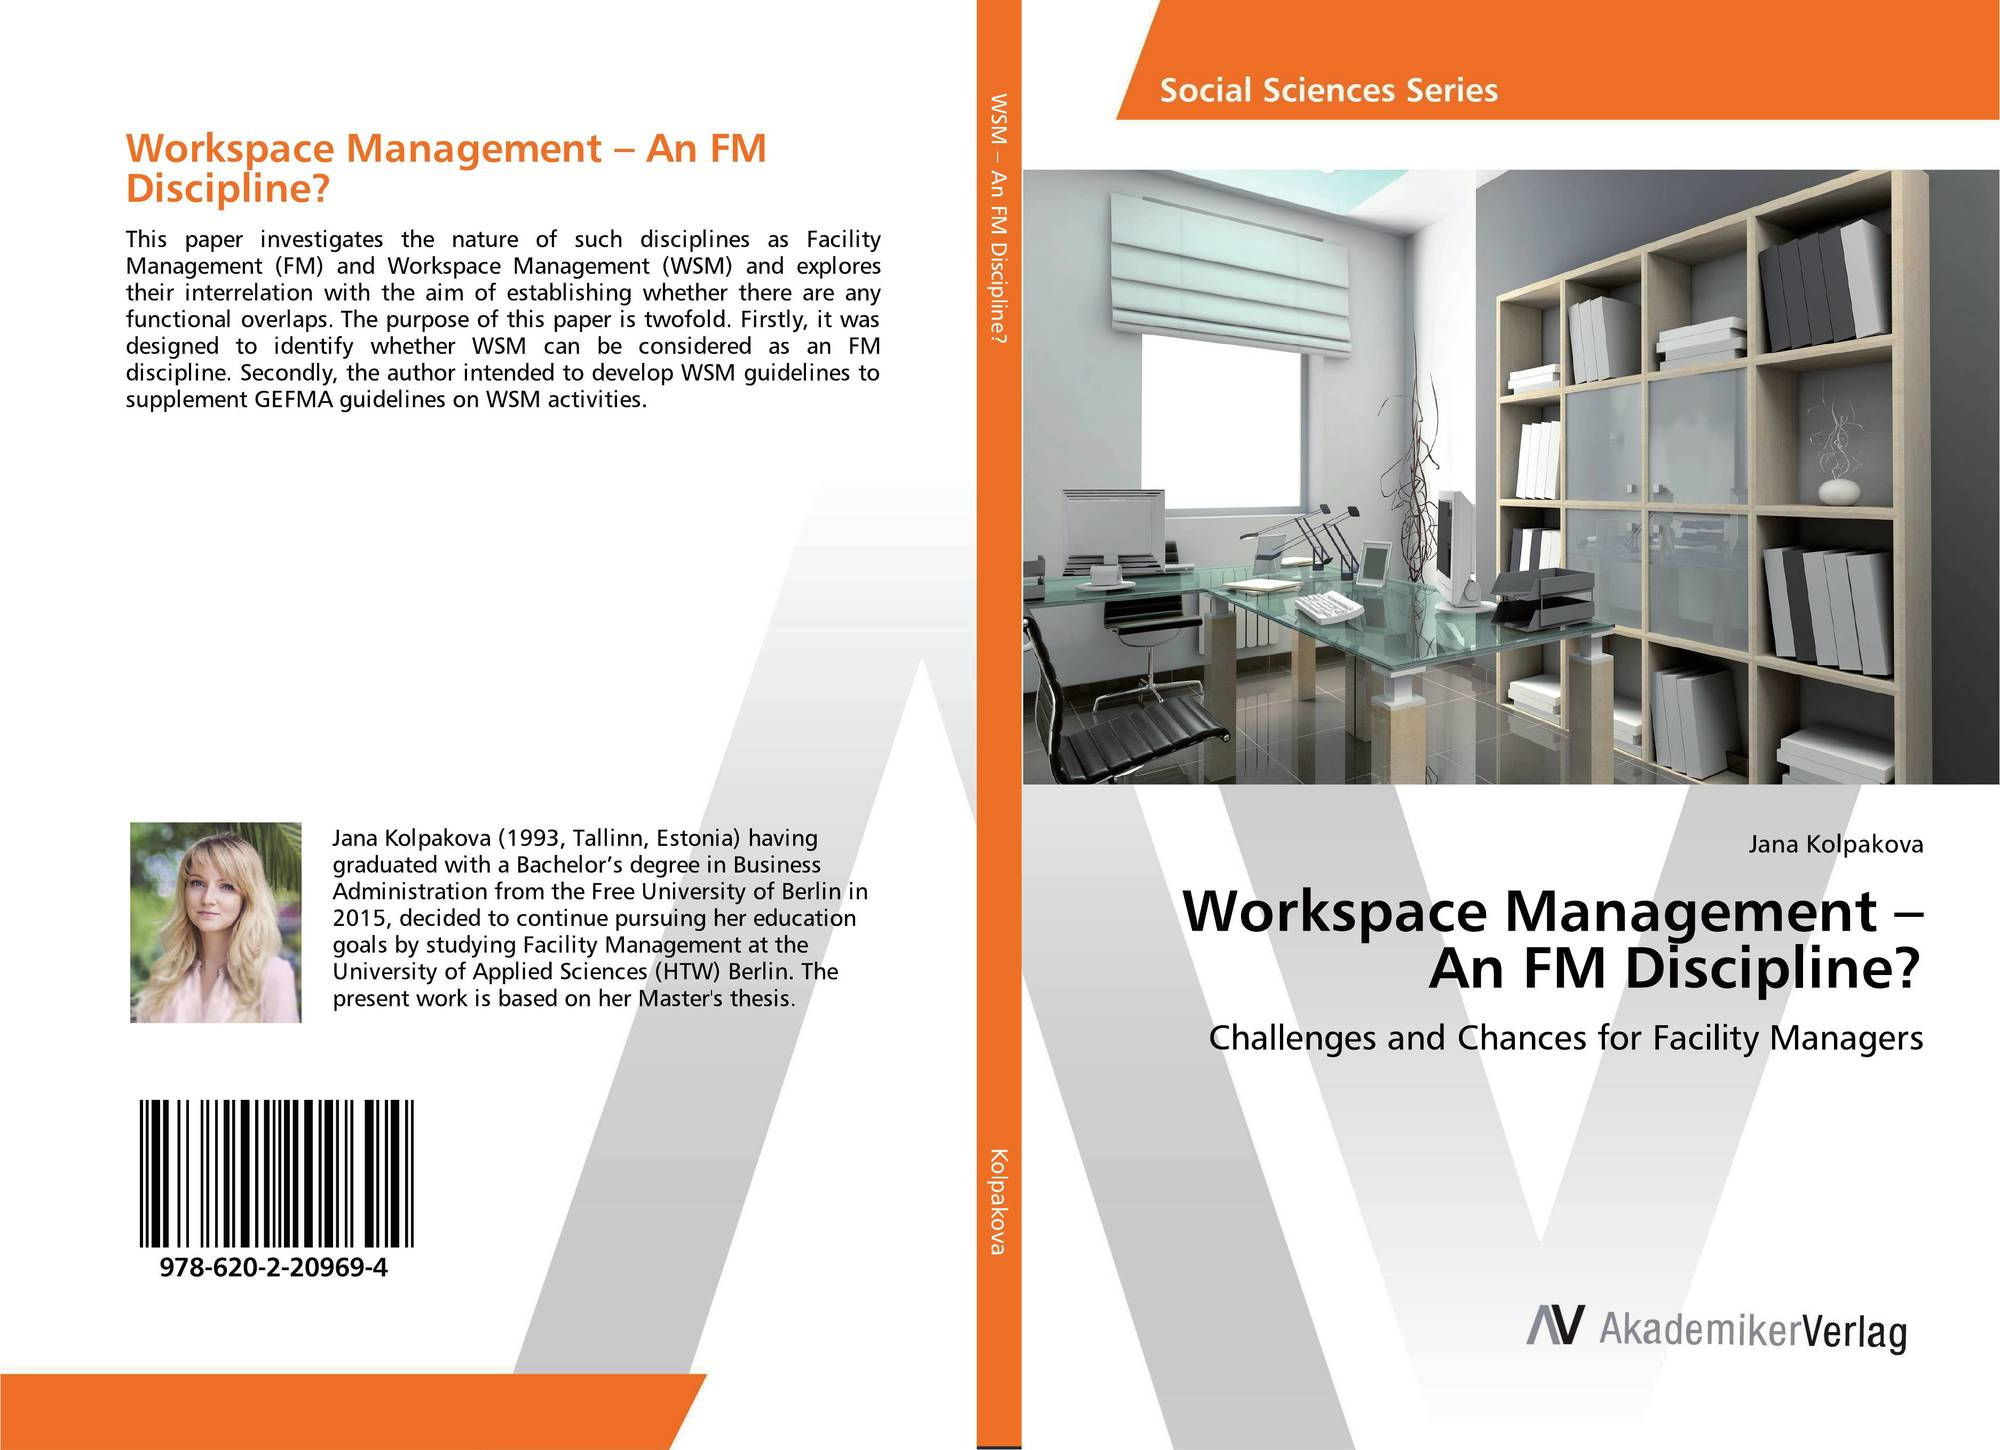 thesis on workers participation in management Type of management in which employees at all levels are encouraged to contribute ideas towards identifying and setting organizational-goals, problem solving, and other decisions that may directly affect themalso called consultative management.